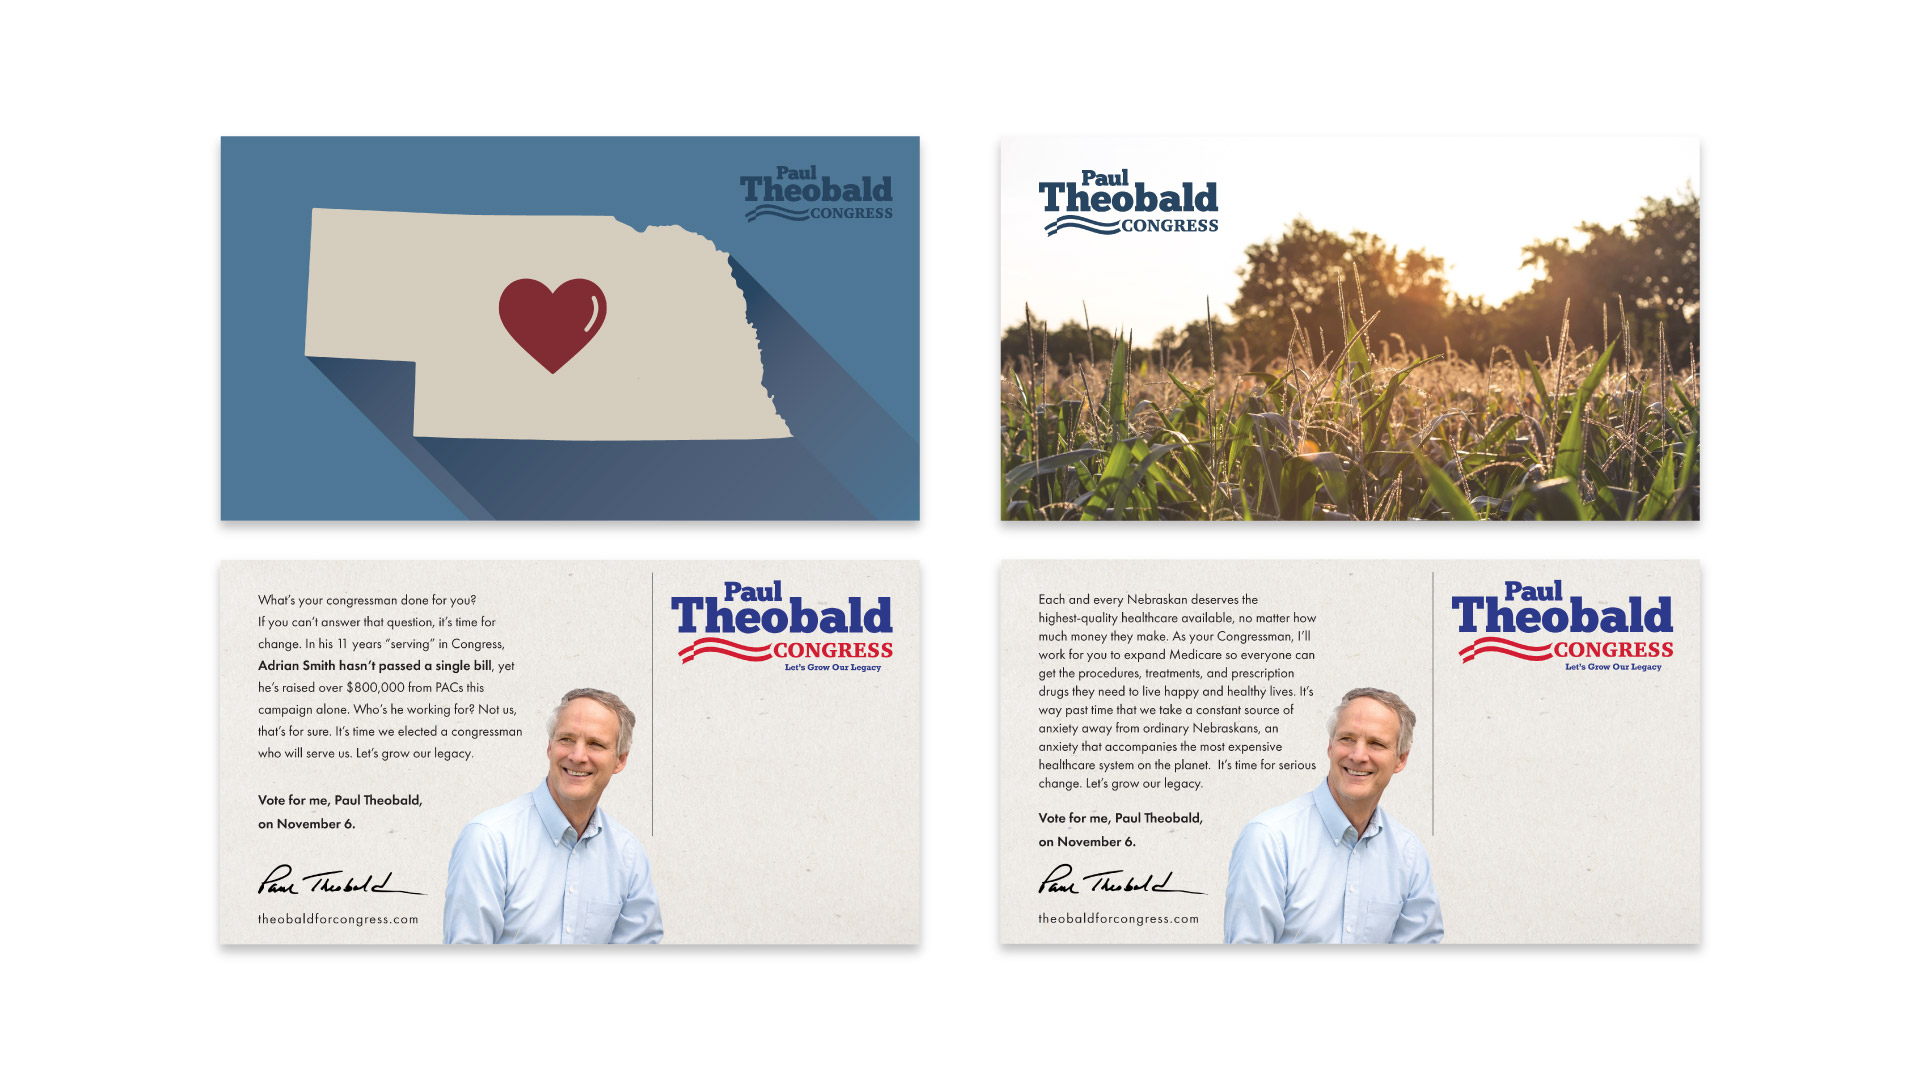 877's campaign business cards for Paul Theobald